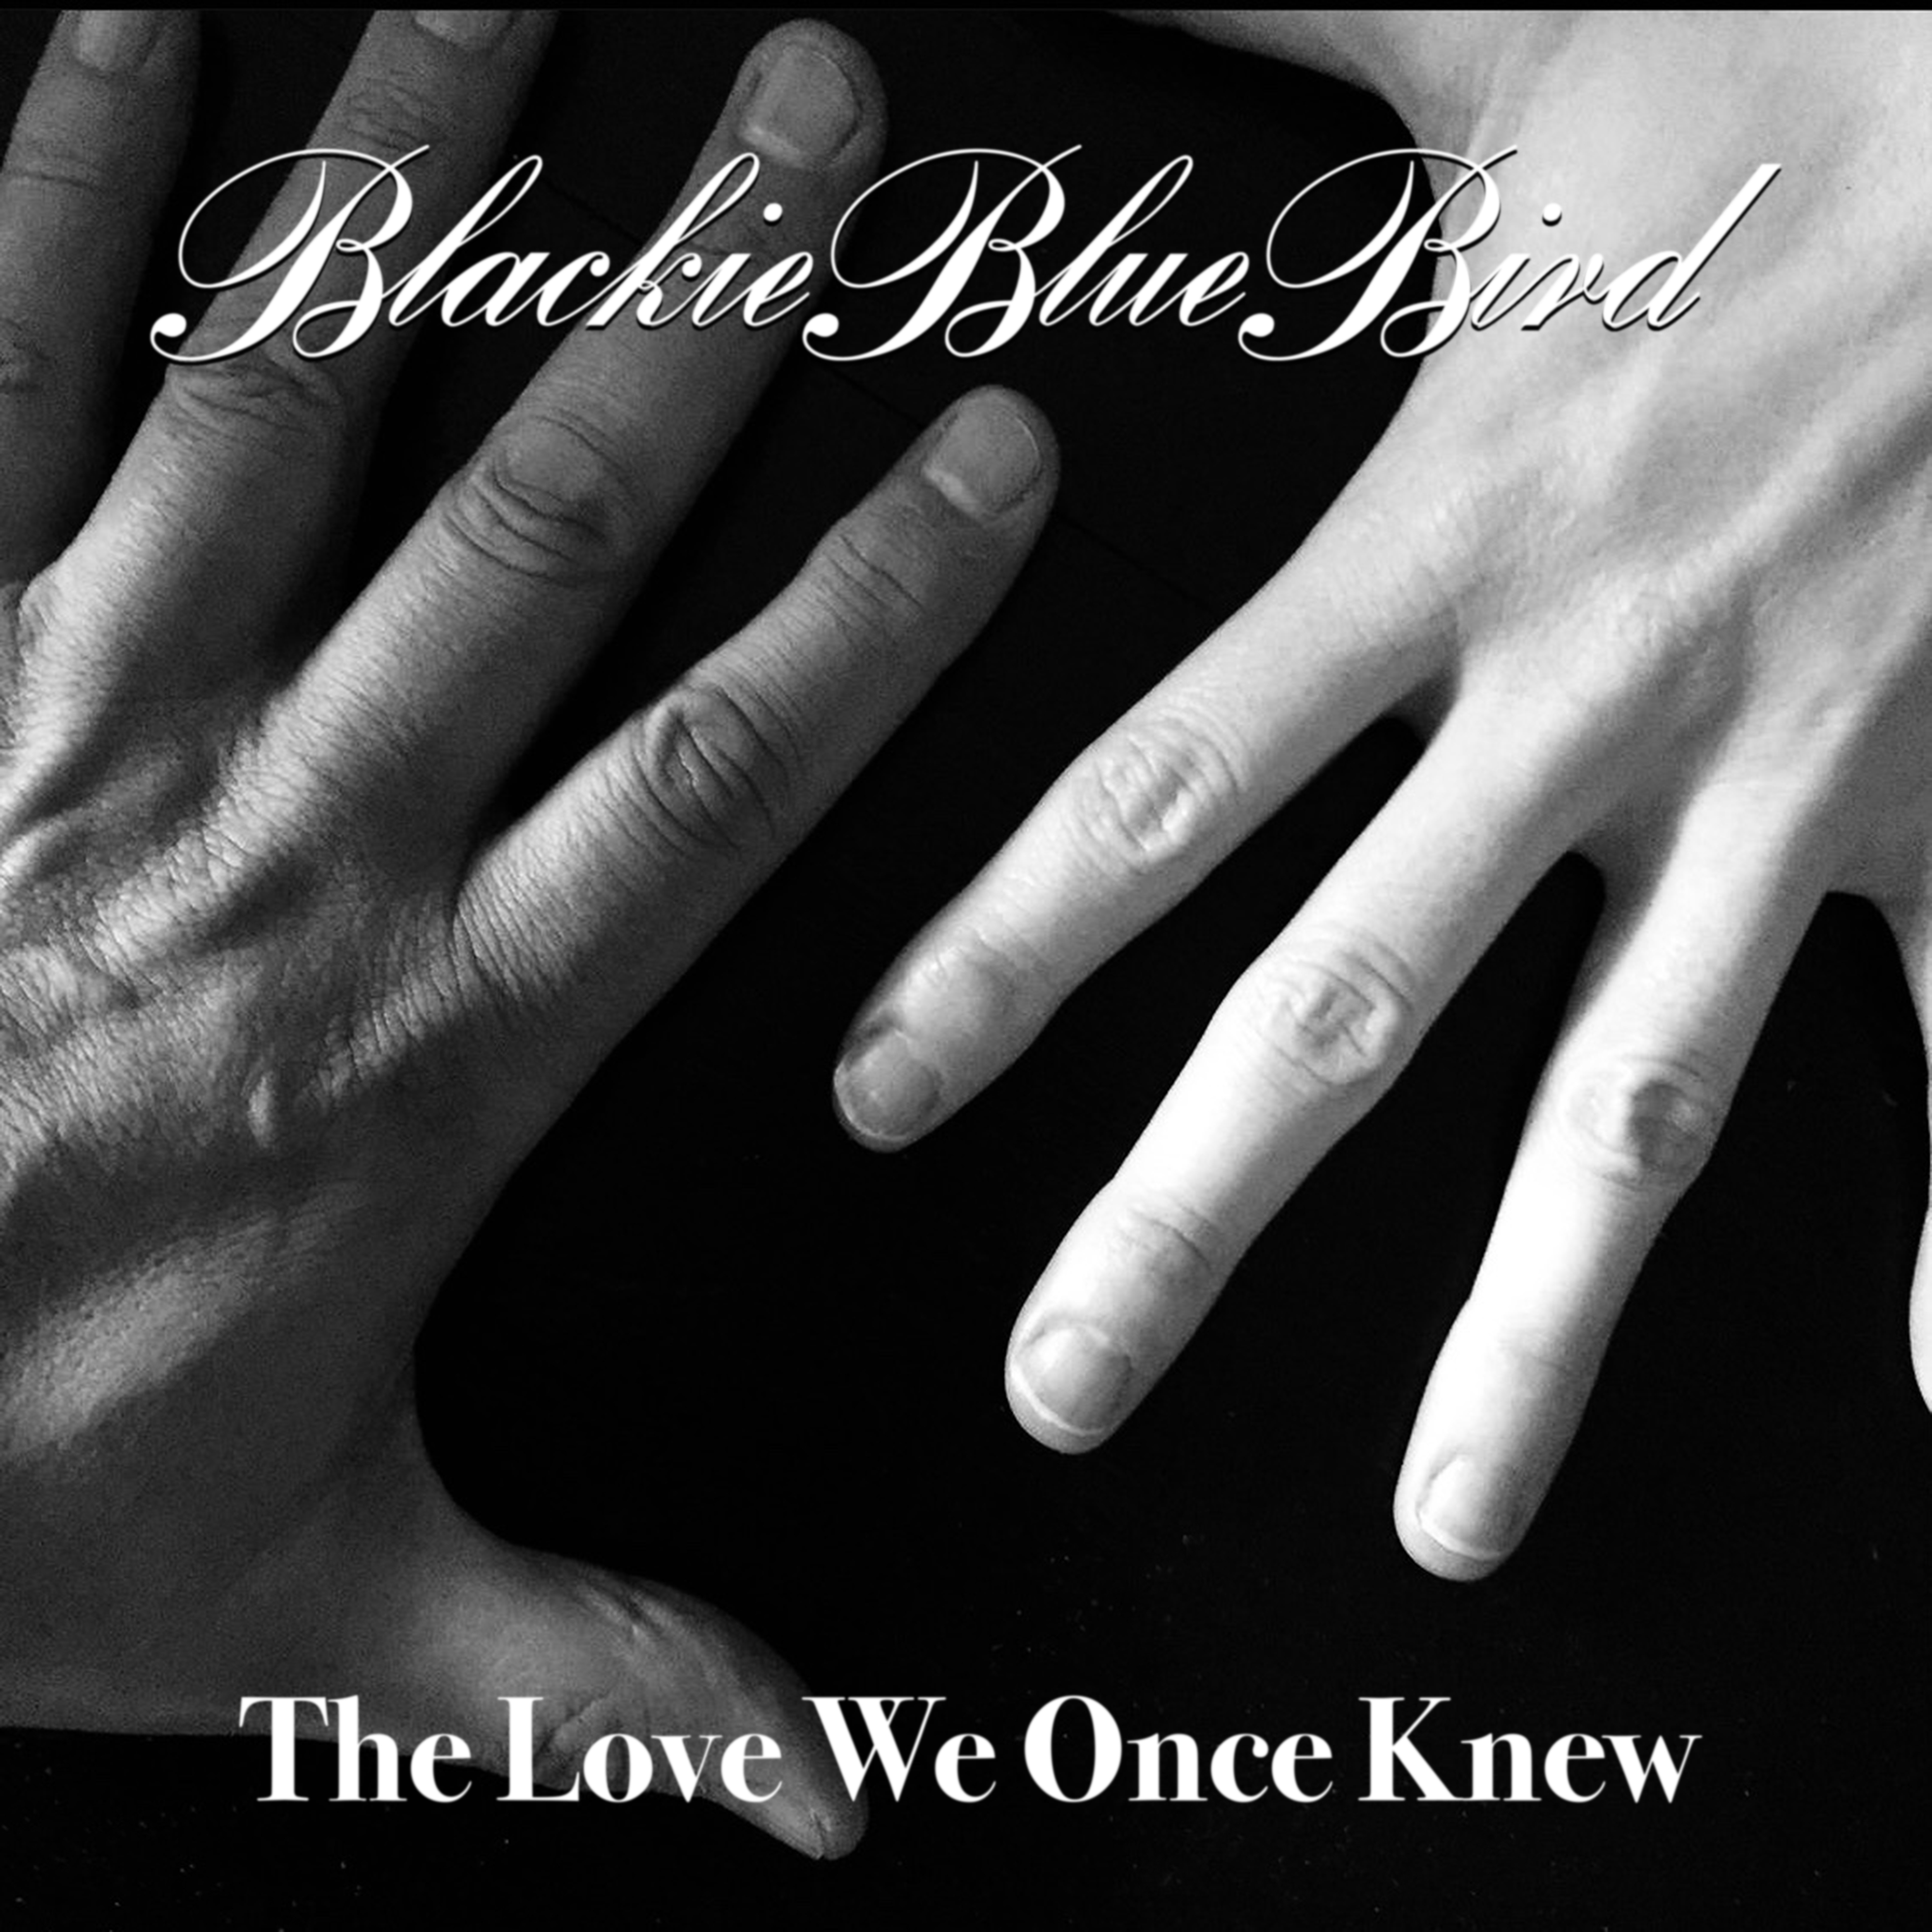 The Love We Once Knew